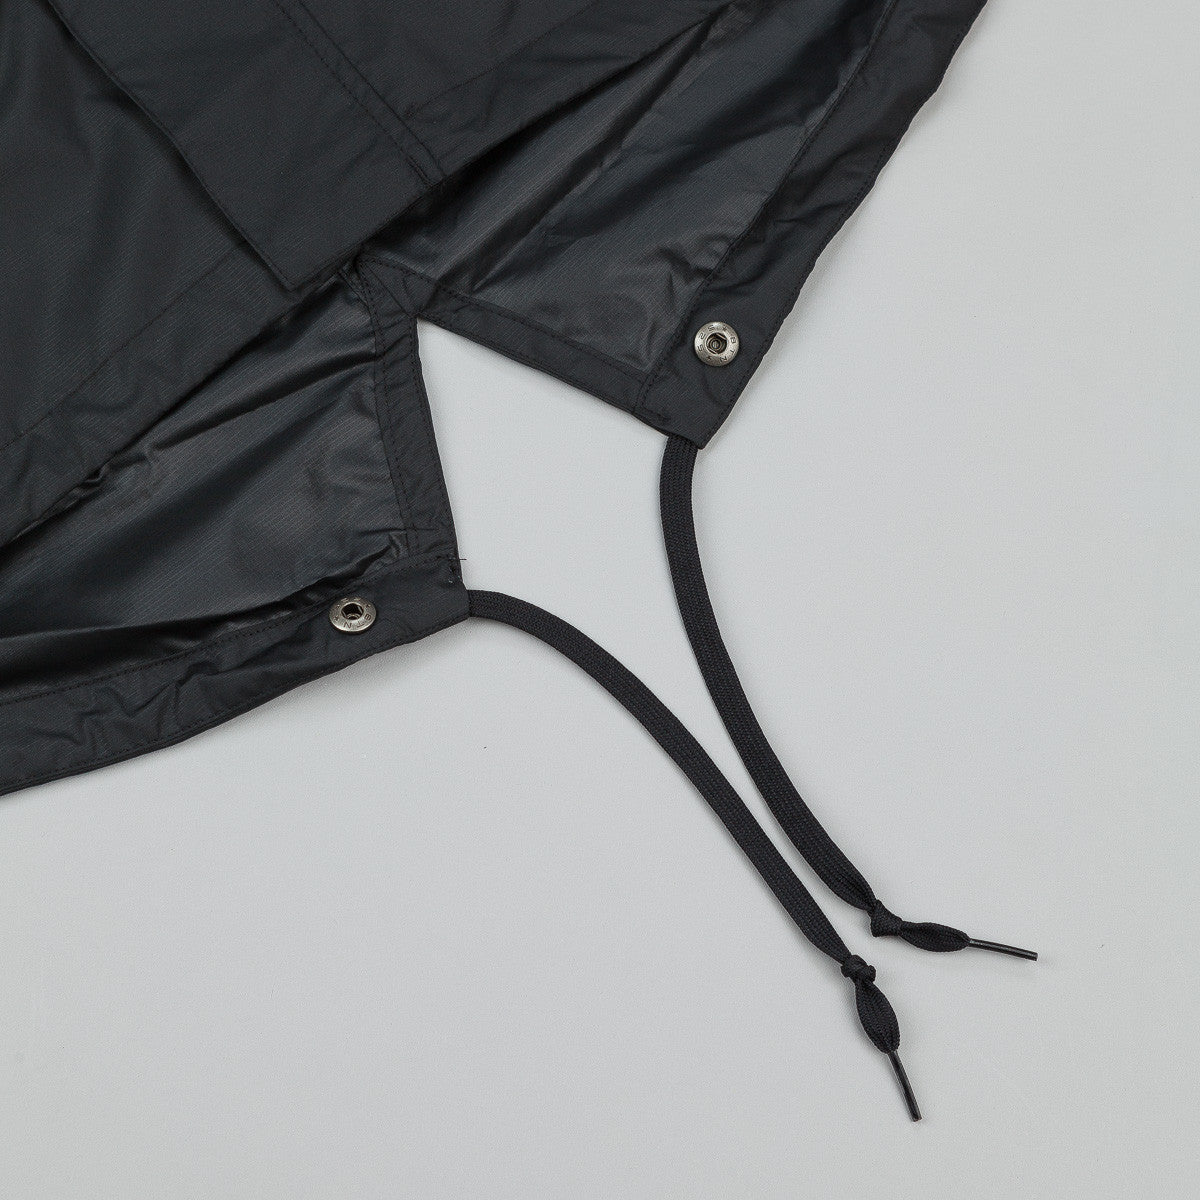 Nike SB Division Lightweight Packable Jacket - Black